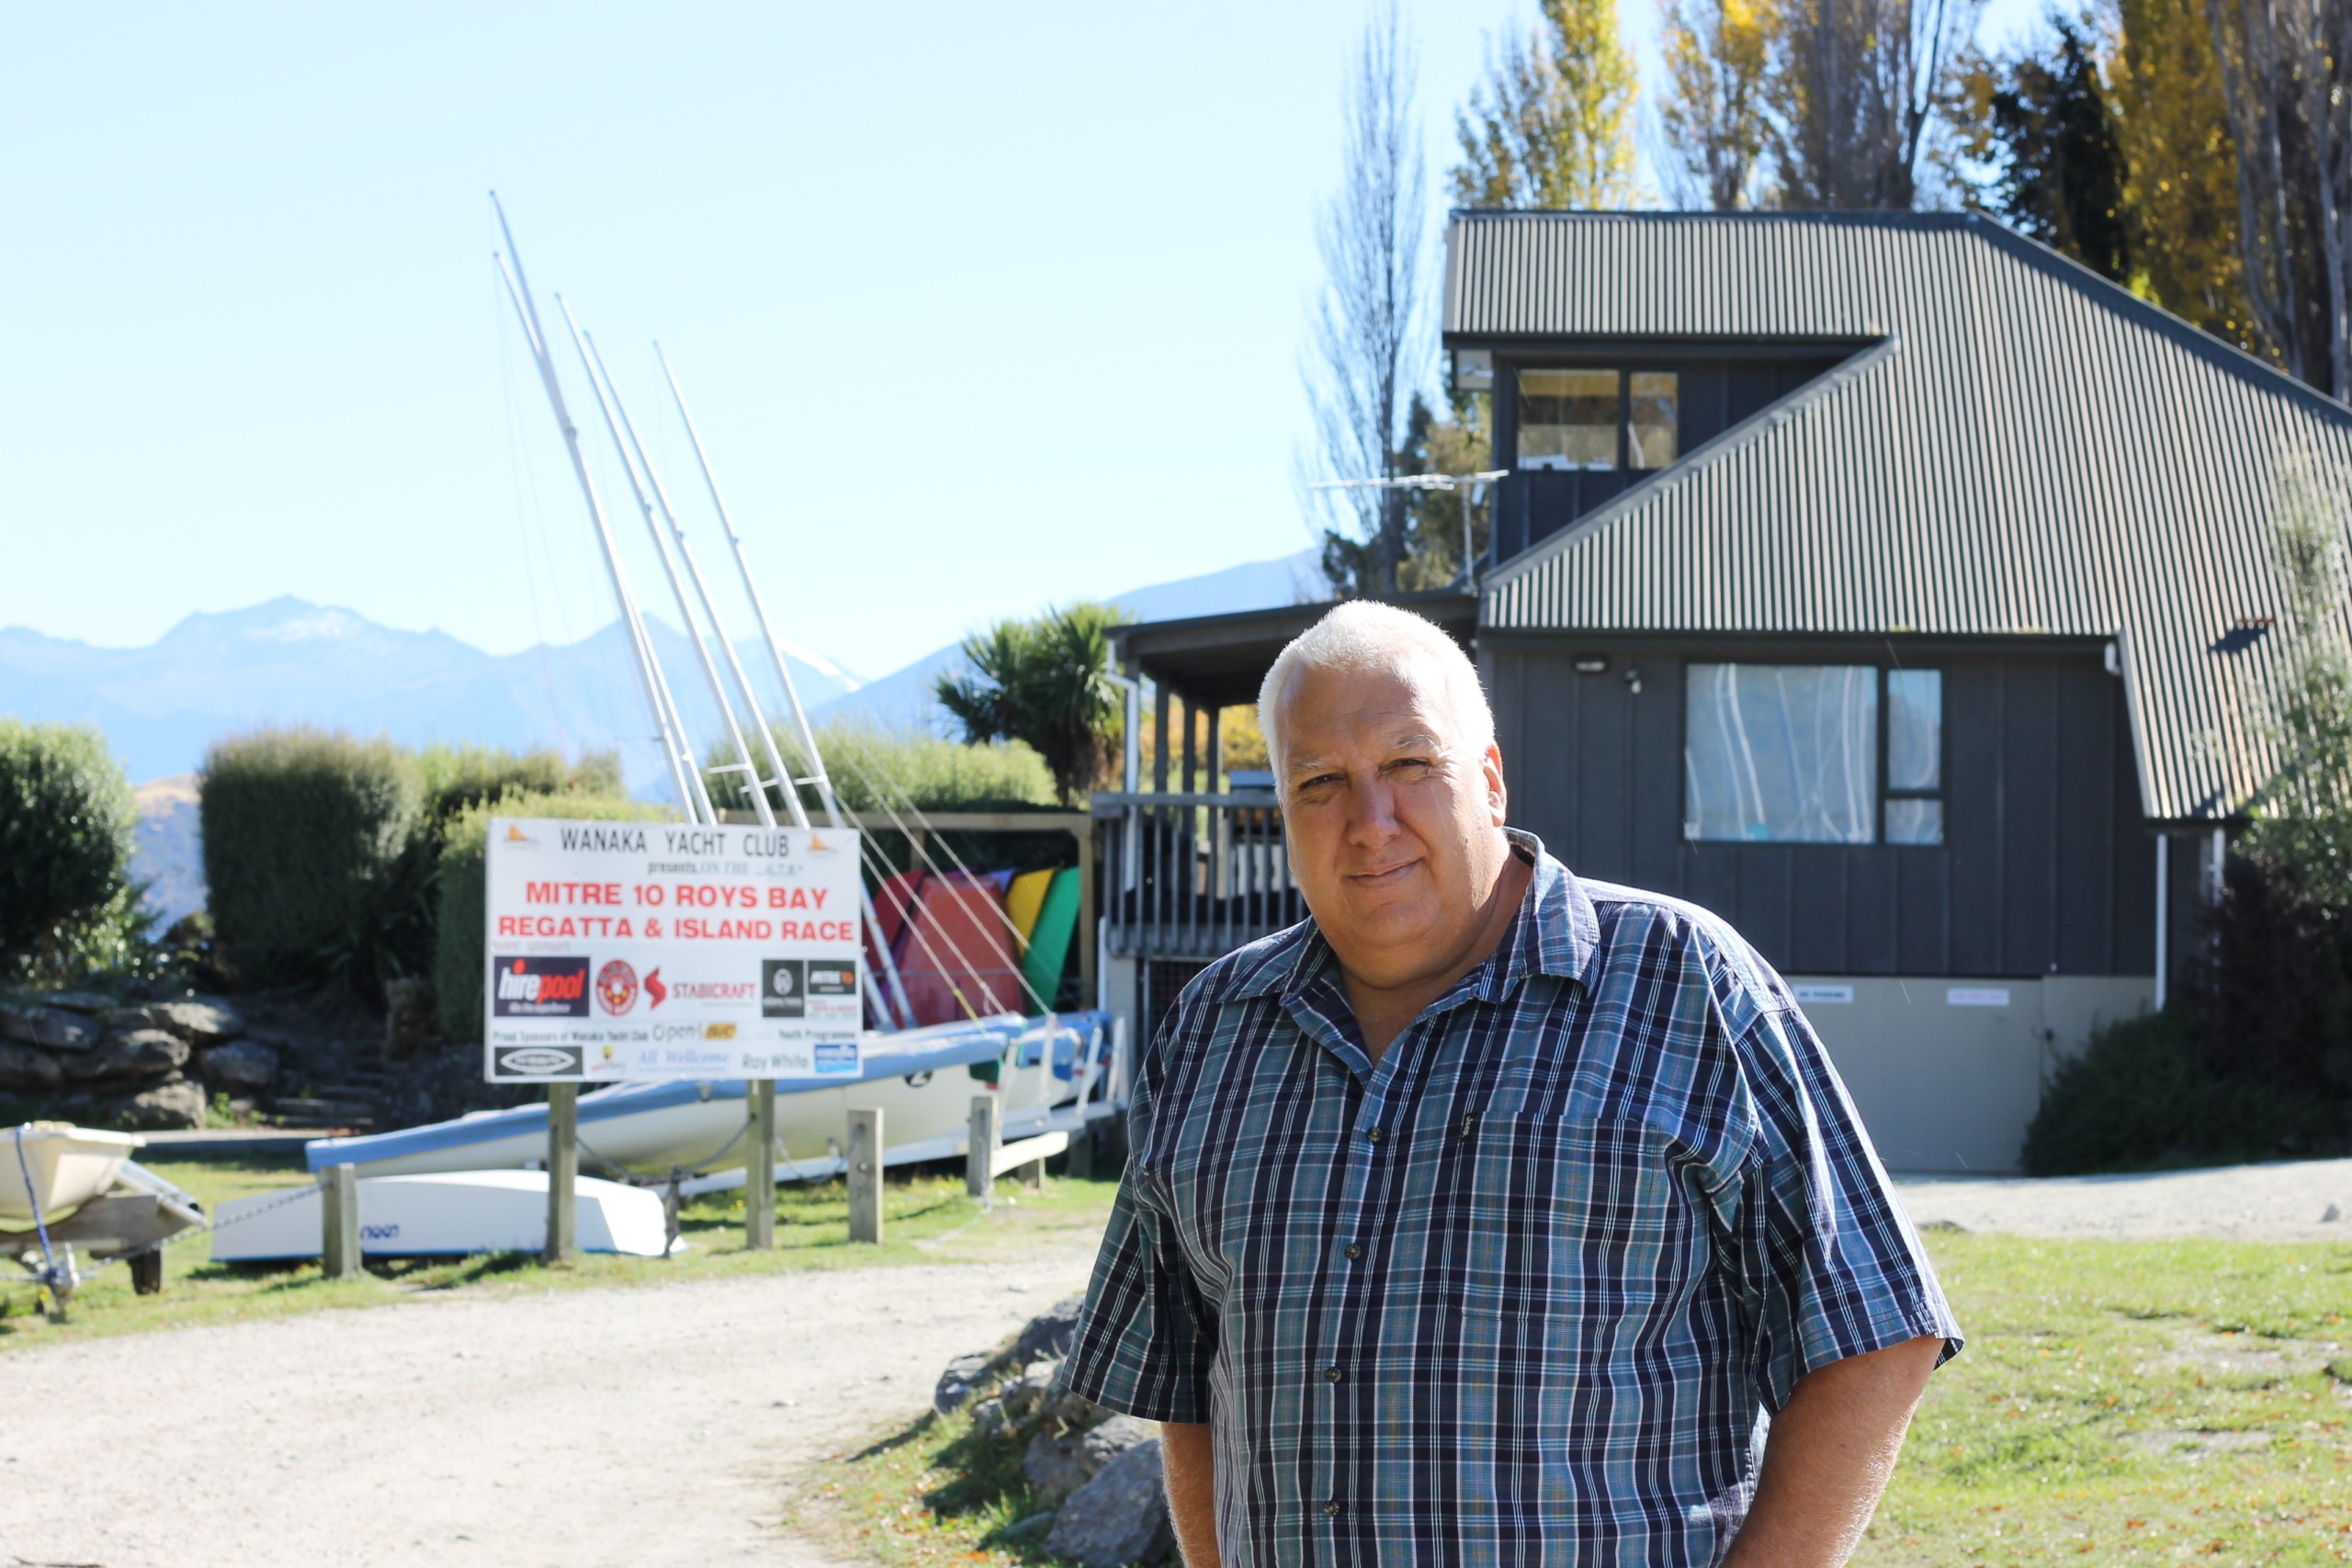 Major upgrade planned for Wanaka Yacht Club